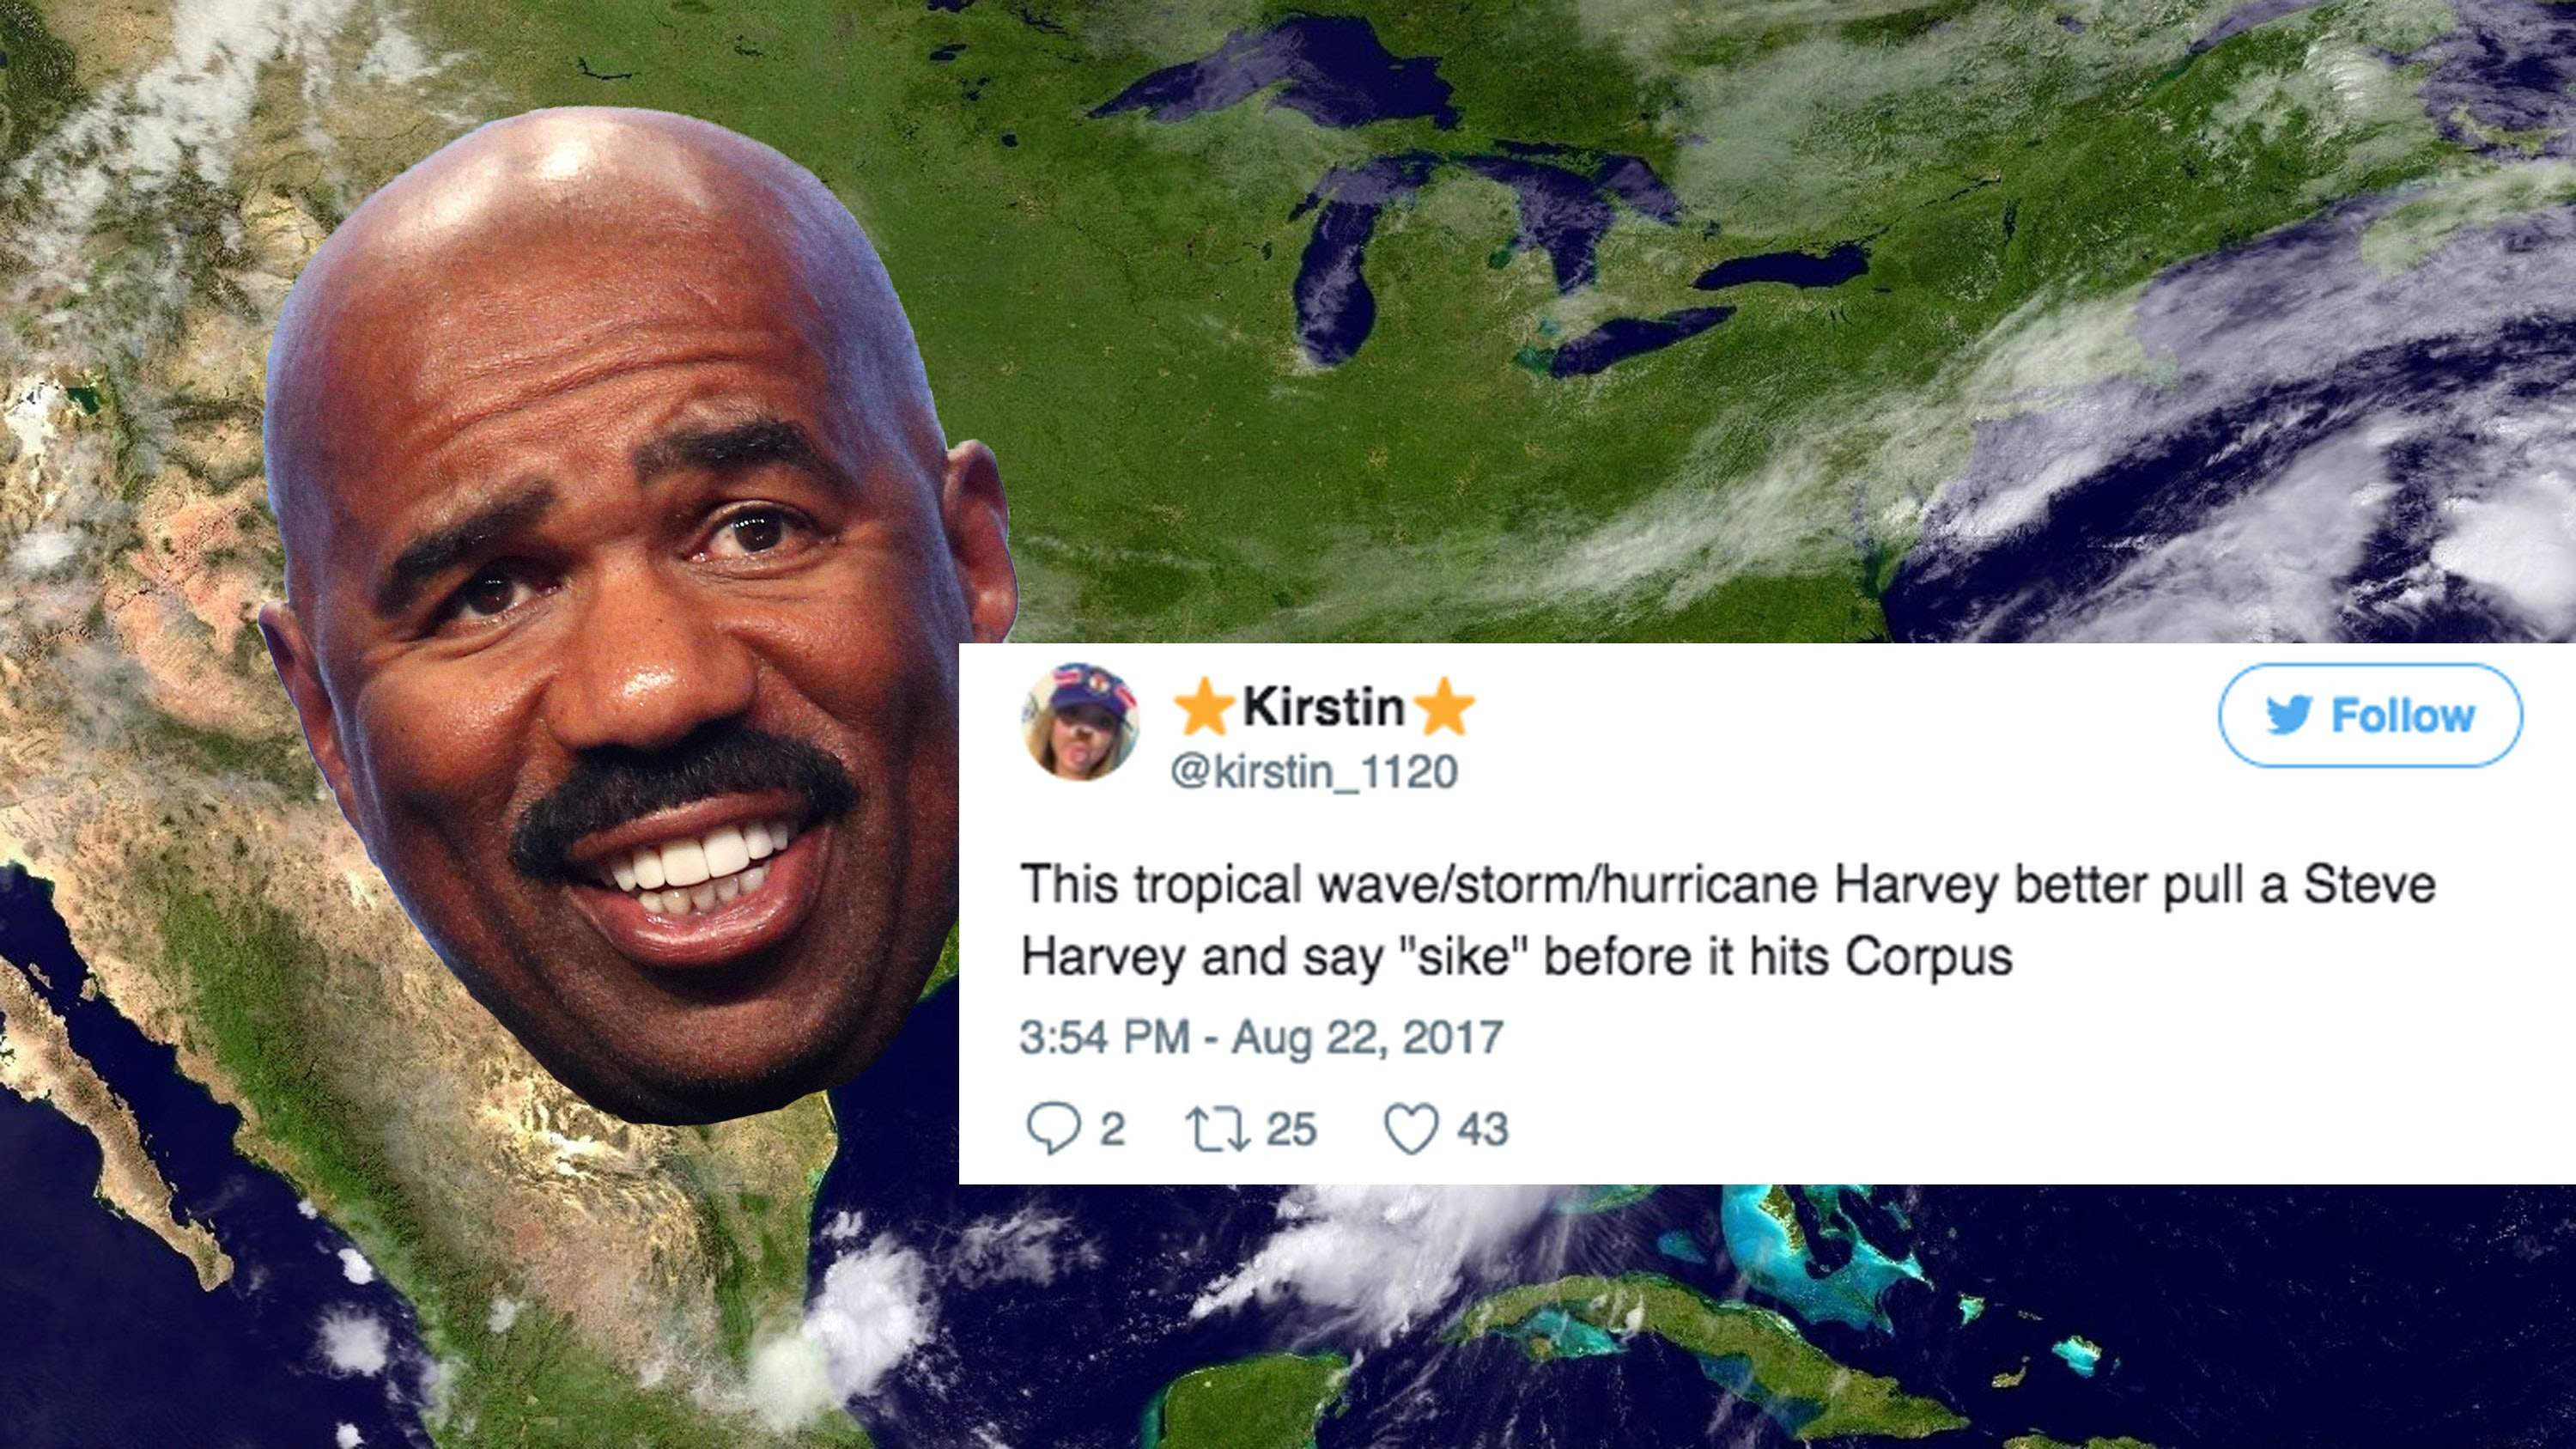 d25bef82 c314 4417 ac1a 06b4ed8b2a68 hurricanesteveharvey?w=740&h=444&fit=crop&crop=faces&auto=format&q=70 13 hurricane harvey memes making the rounds on twitter update